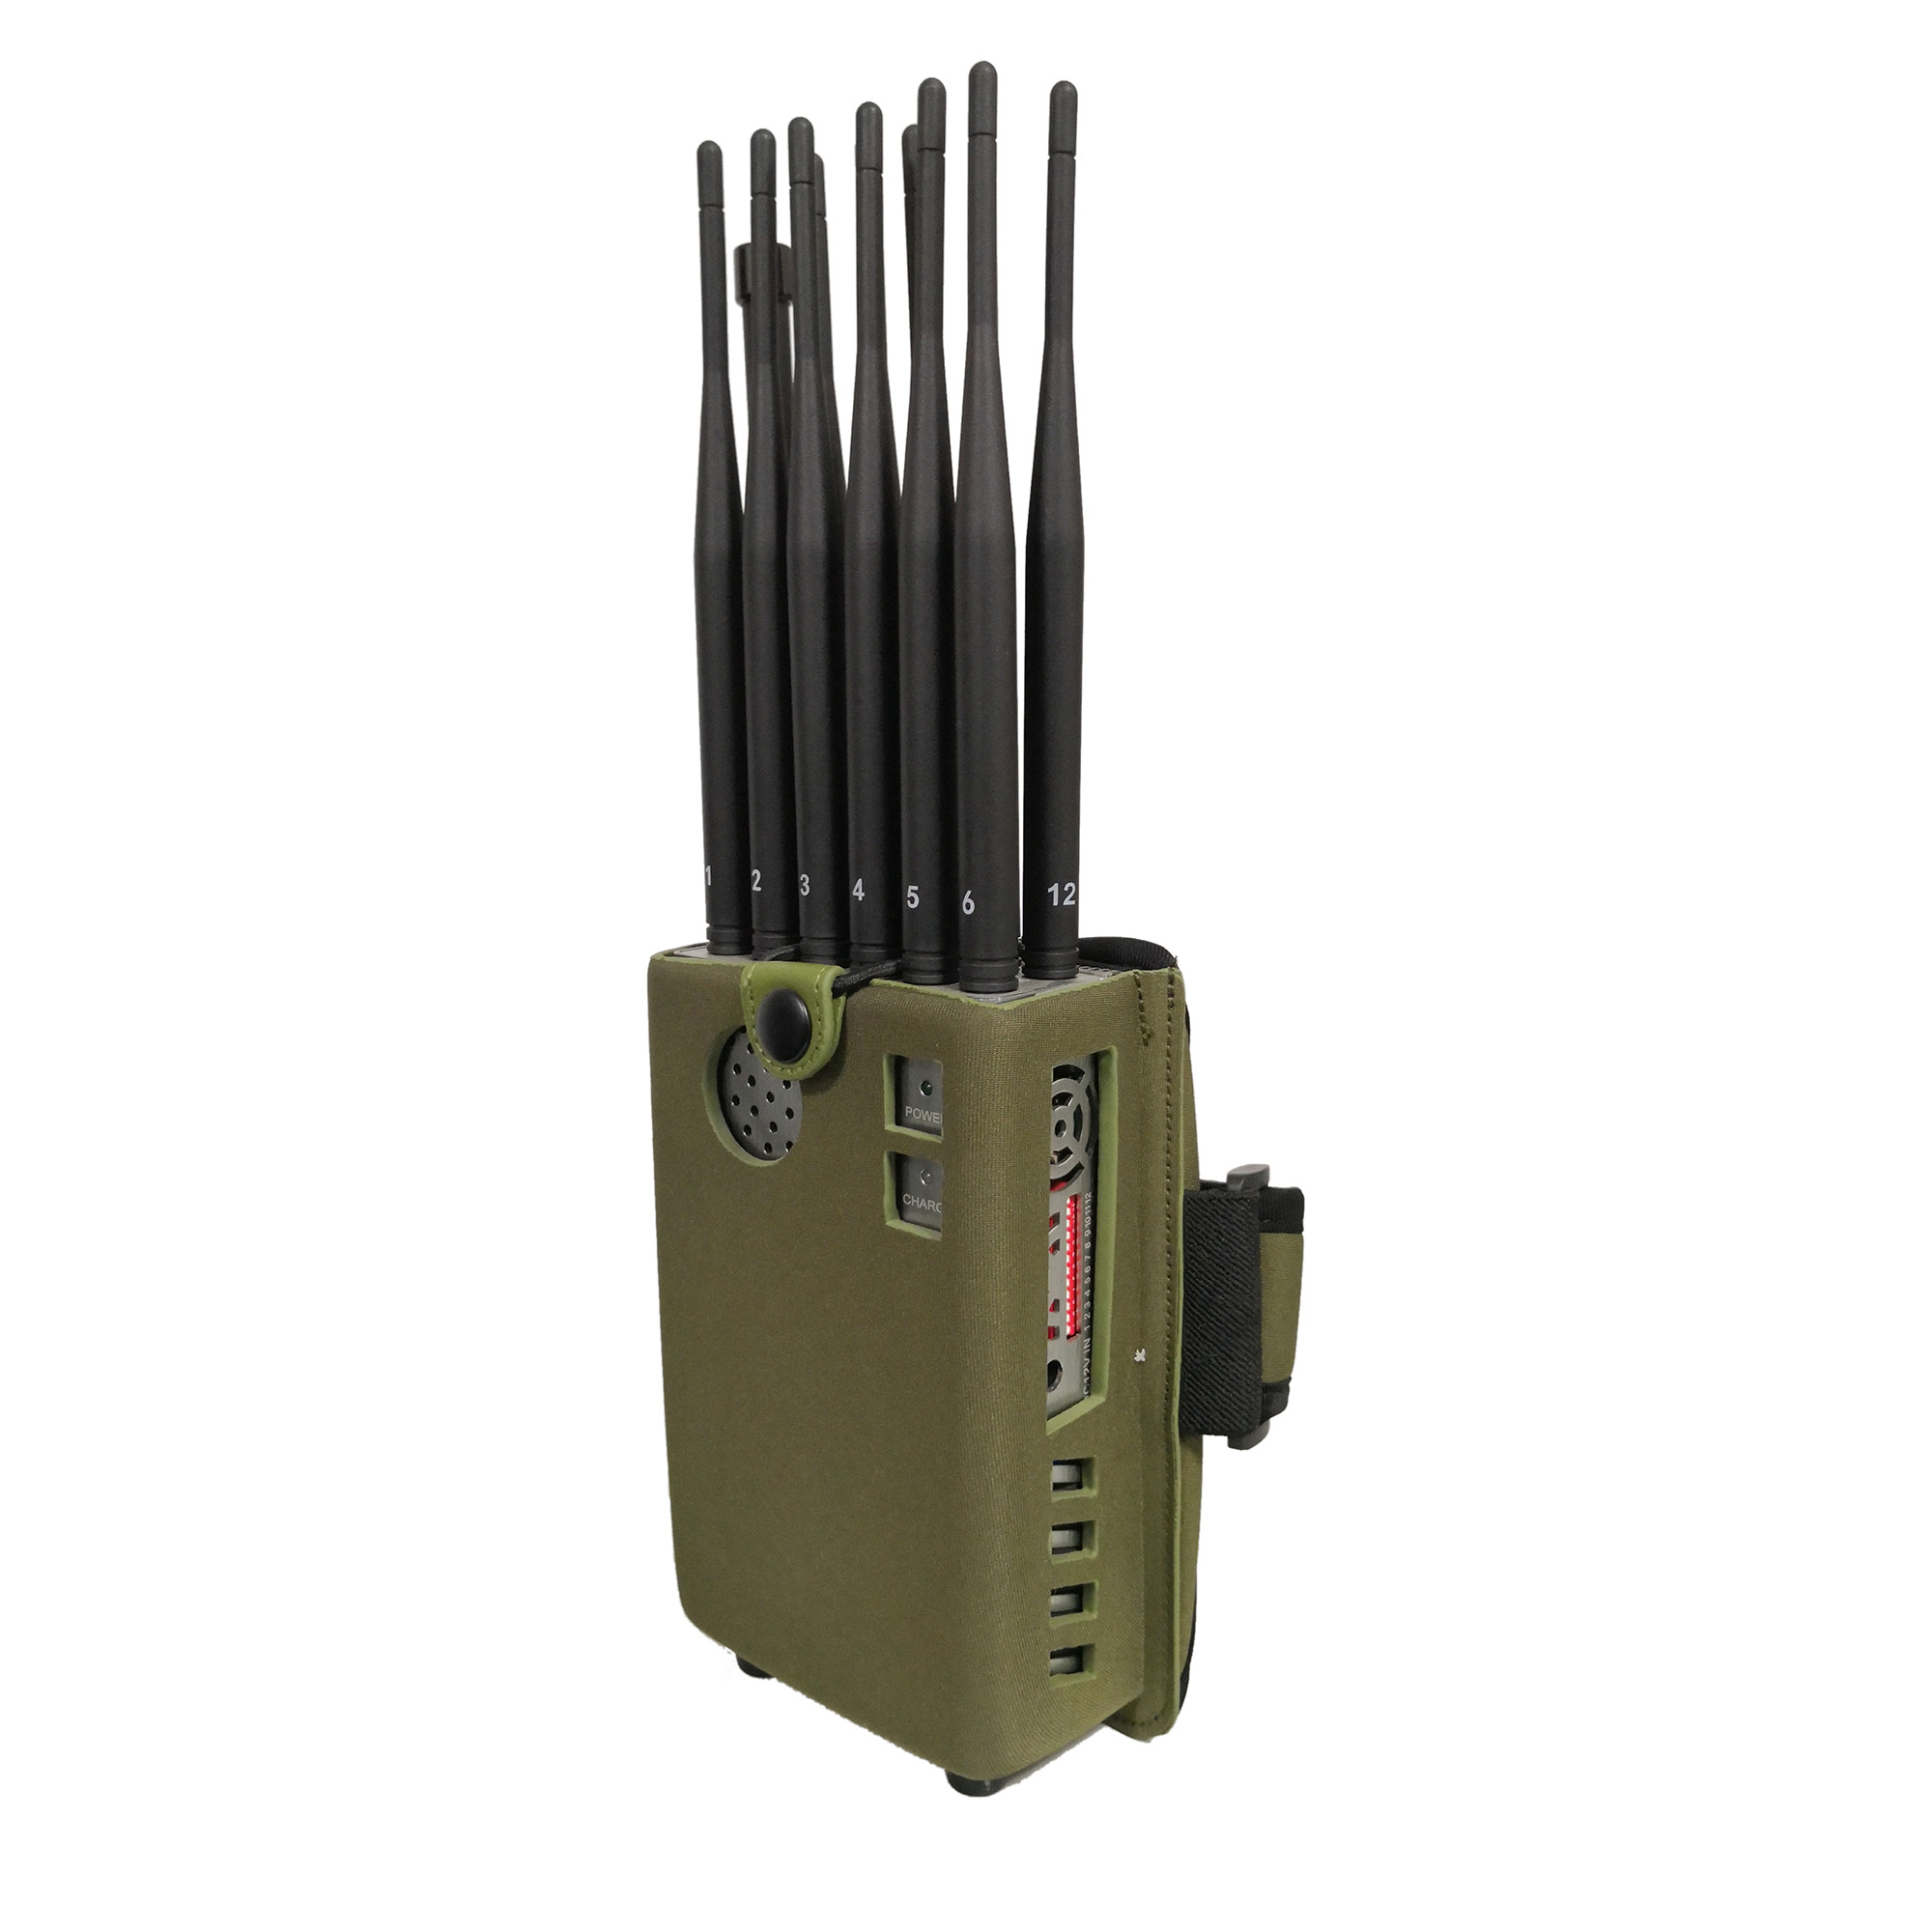 Signal jammer for car - High Power Remote Control Jammer for GPSL3/L4/GSM/3G/4G433MHz/315MHz/868MHz